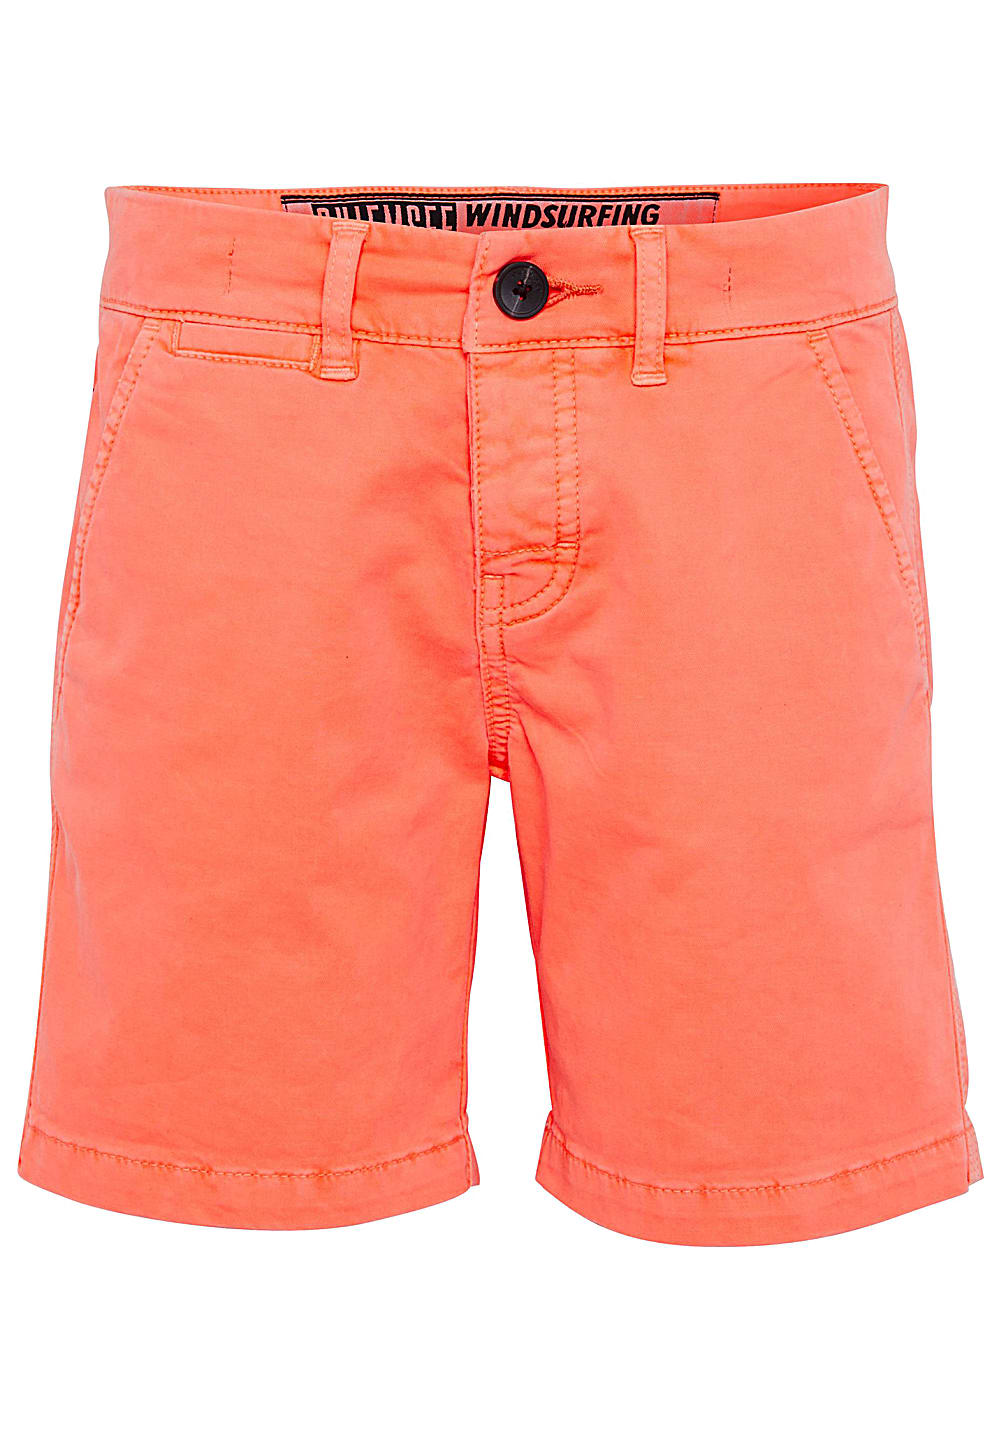 Boyshosen - Chiemsee Shorts Sonstige Shorts für Jungs Orange - Onlineshop Planet Sports